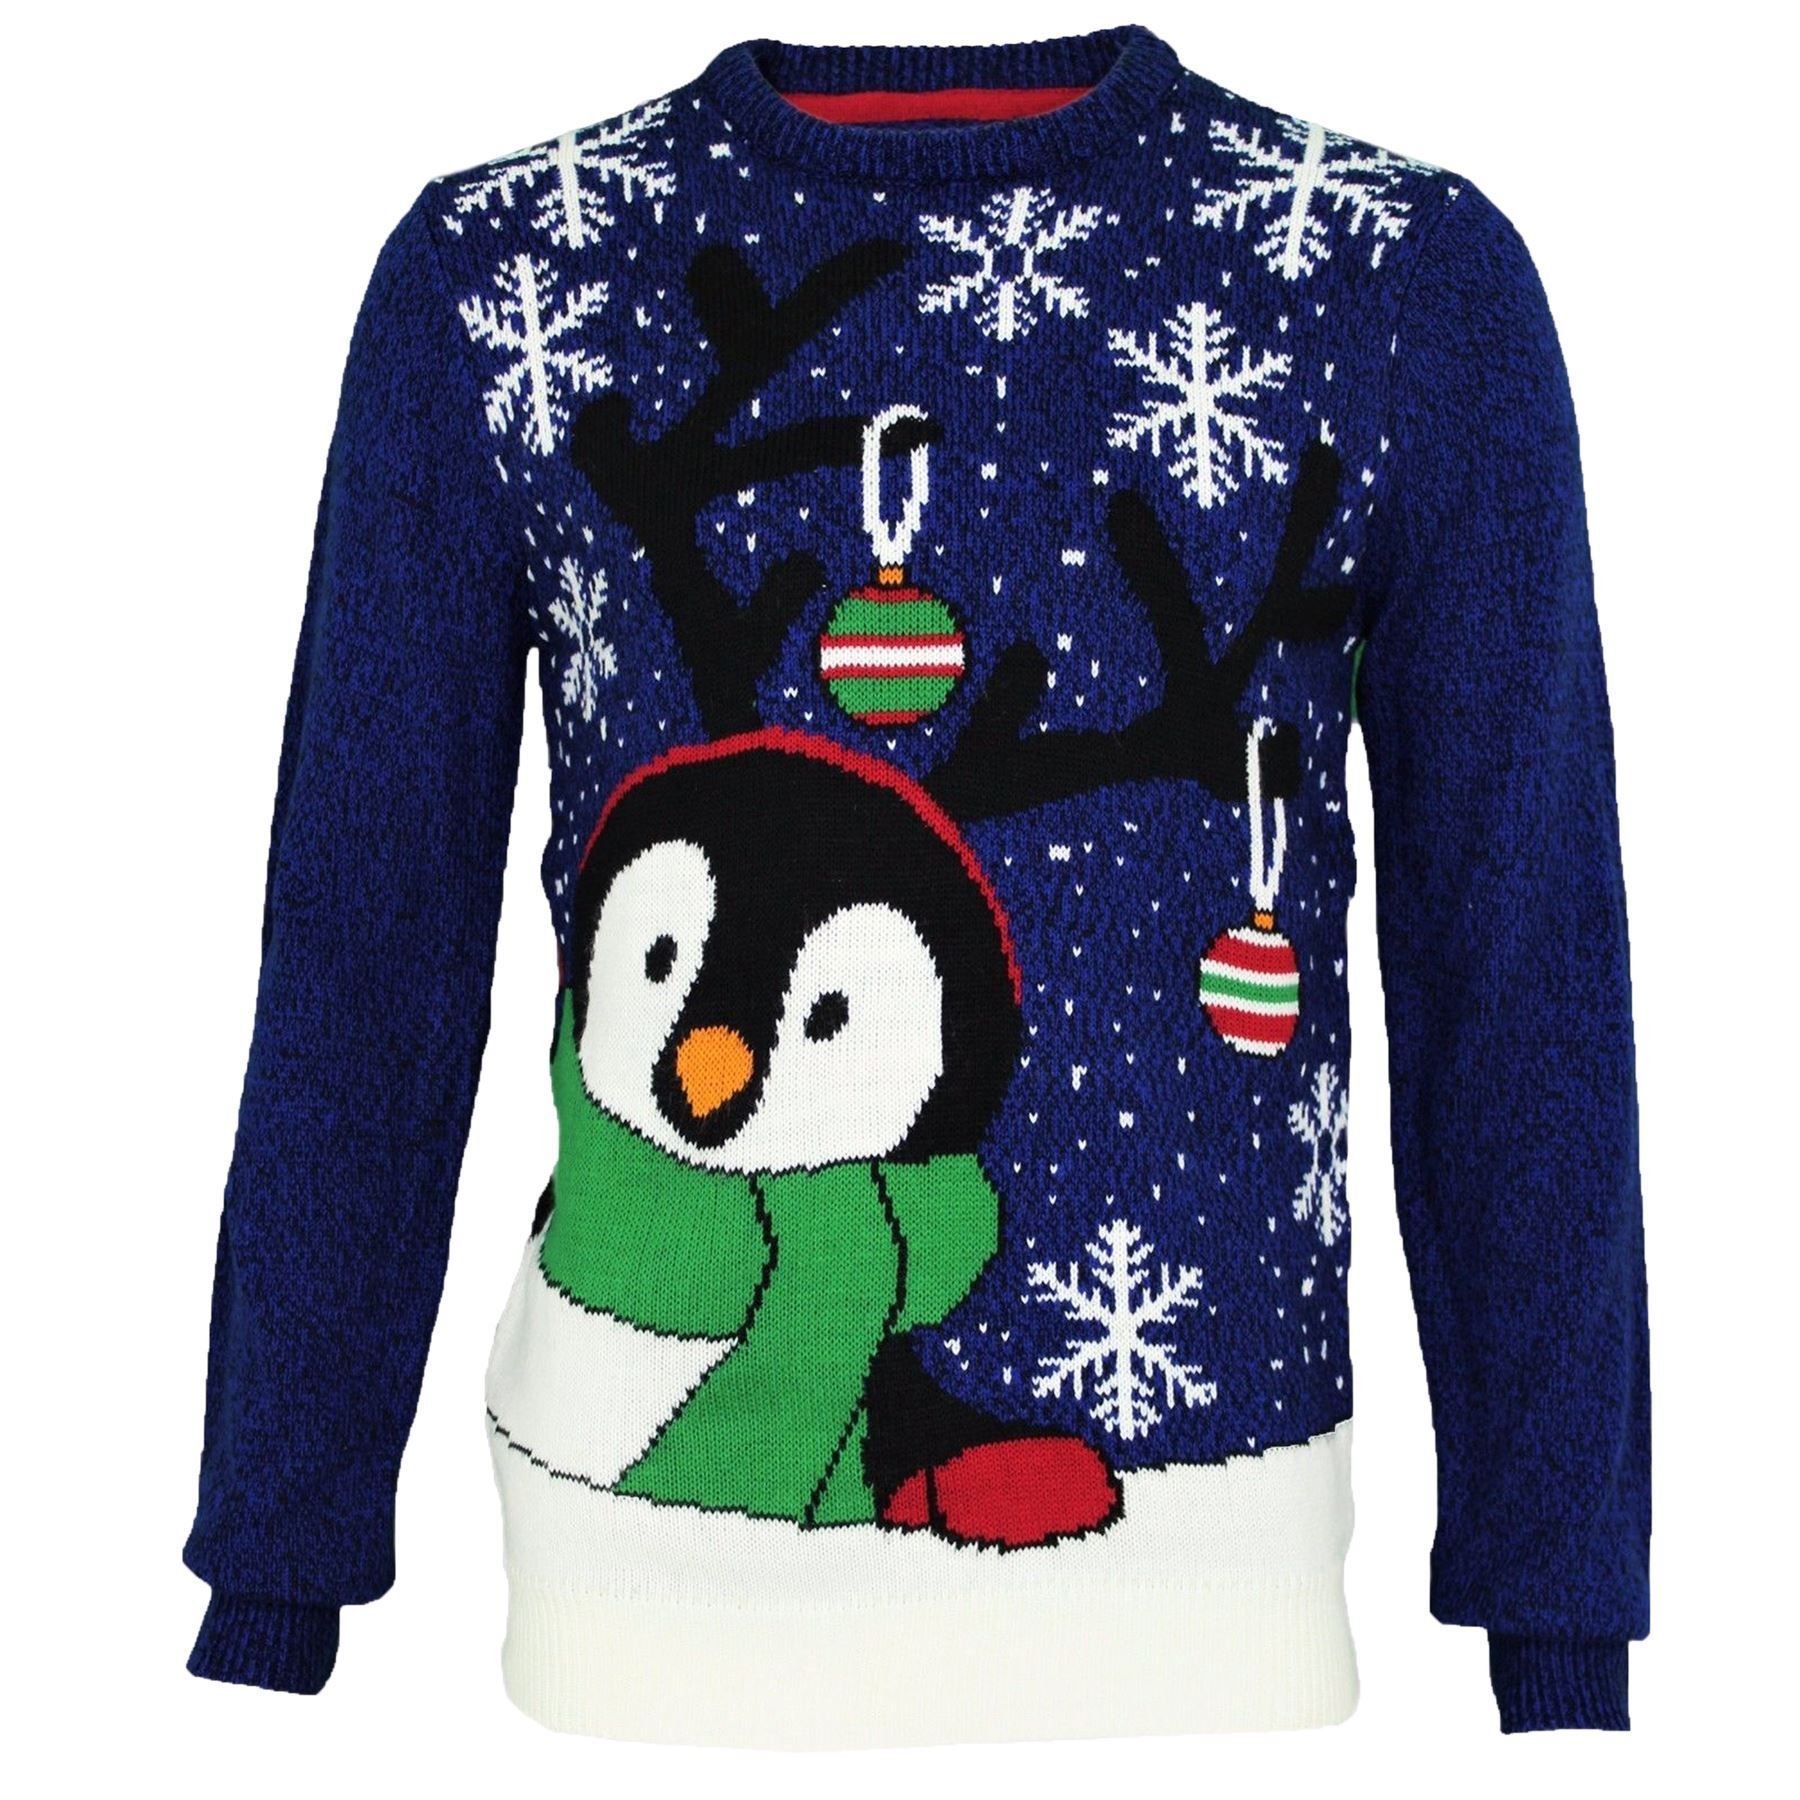 It's time to welcome back everyone's festive favourite - the beloved Christmas jumper. With super-cosy designs featuring everyone's favourite Christmas characters, you won't be able to resist these must have sweaters.